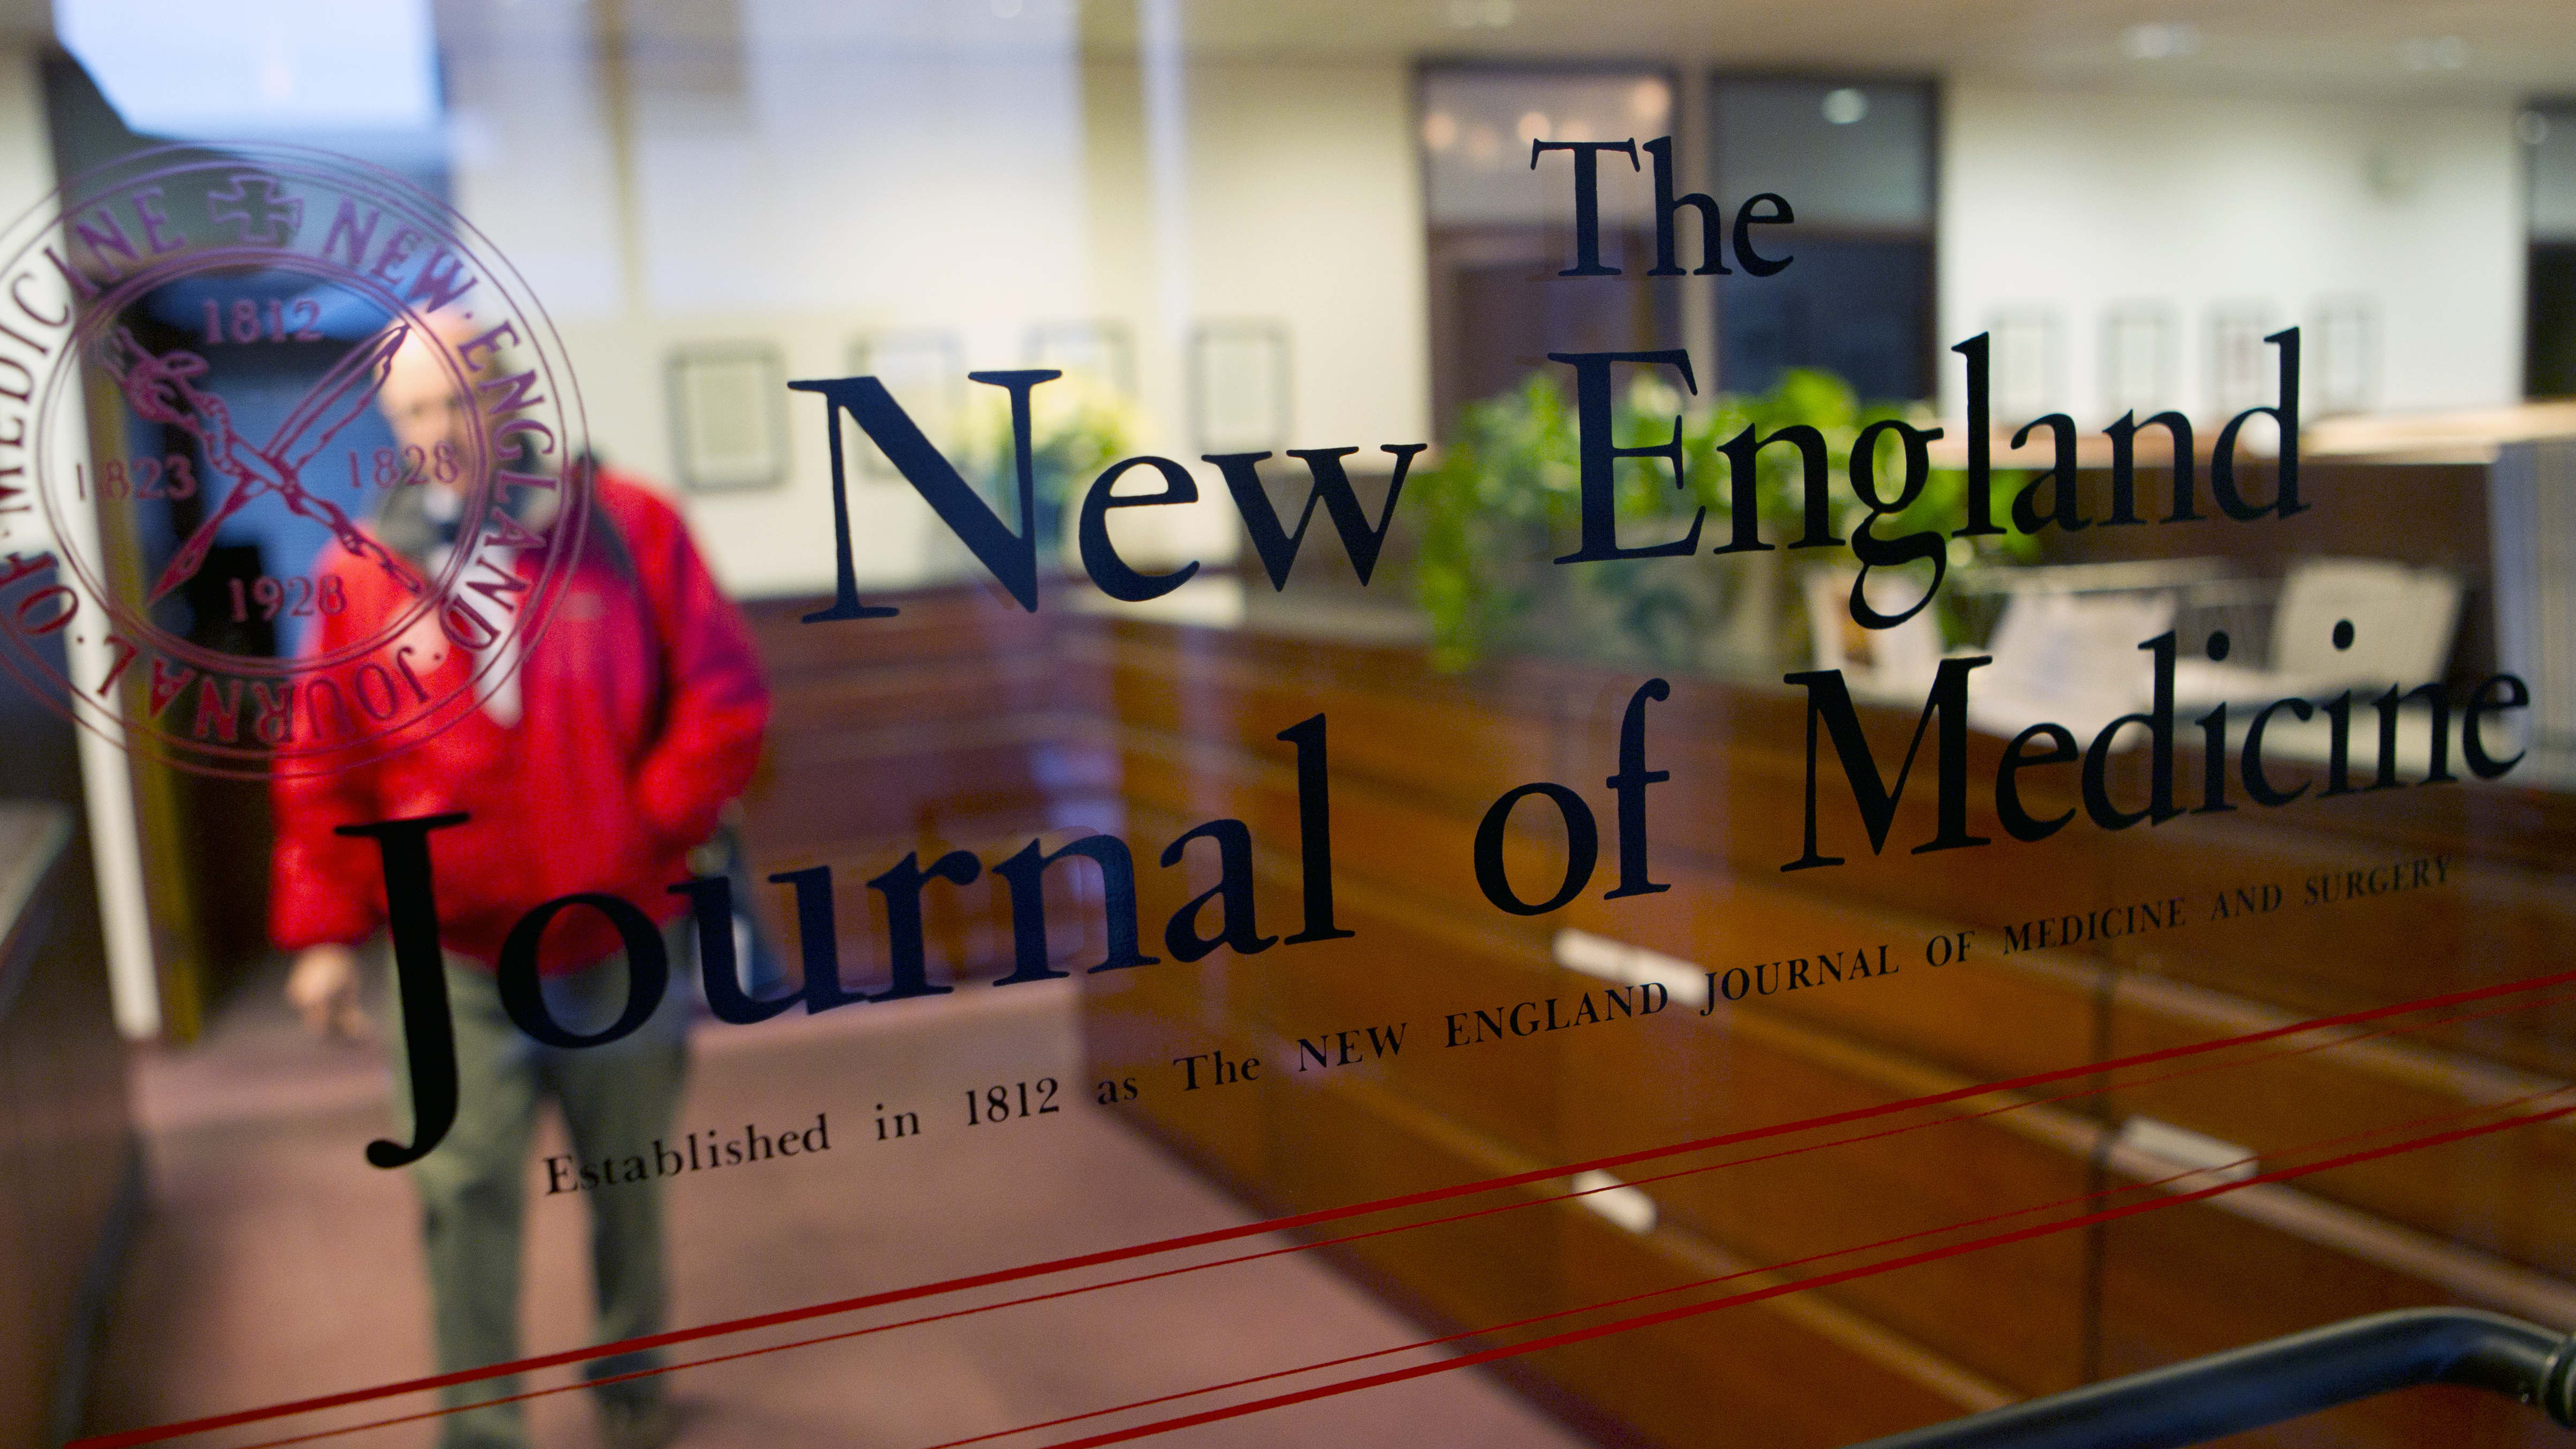 After 208 Years, Medical Journal Gets Political